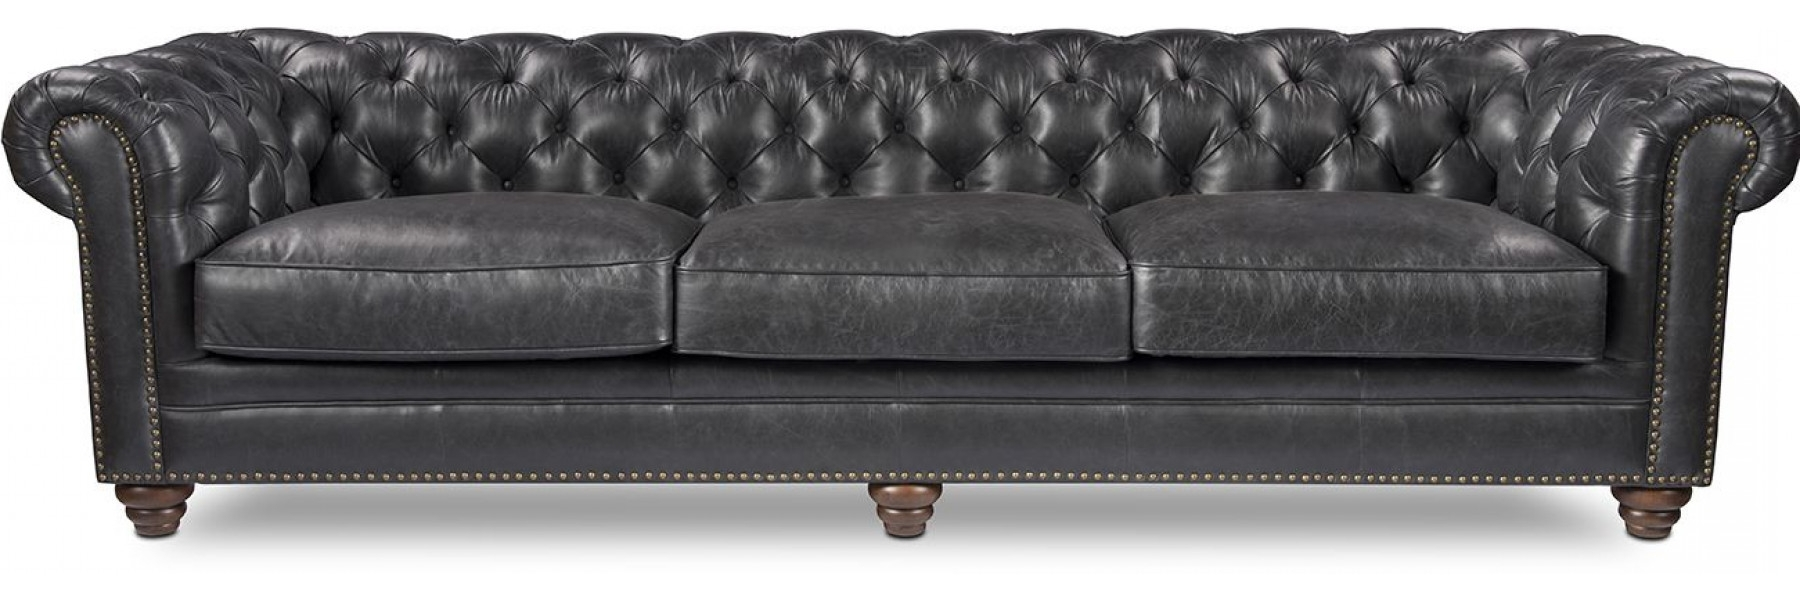 Well Known Sofa Oxford Black In Oxford Sofas (View 14 of 15)